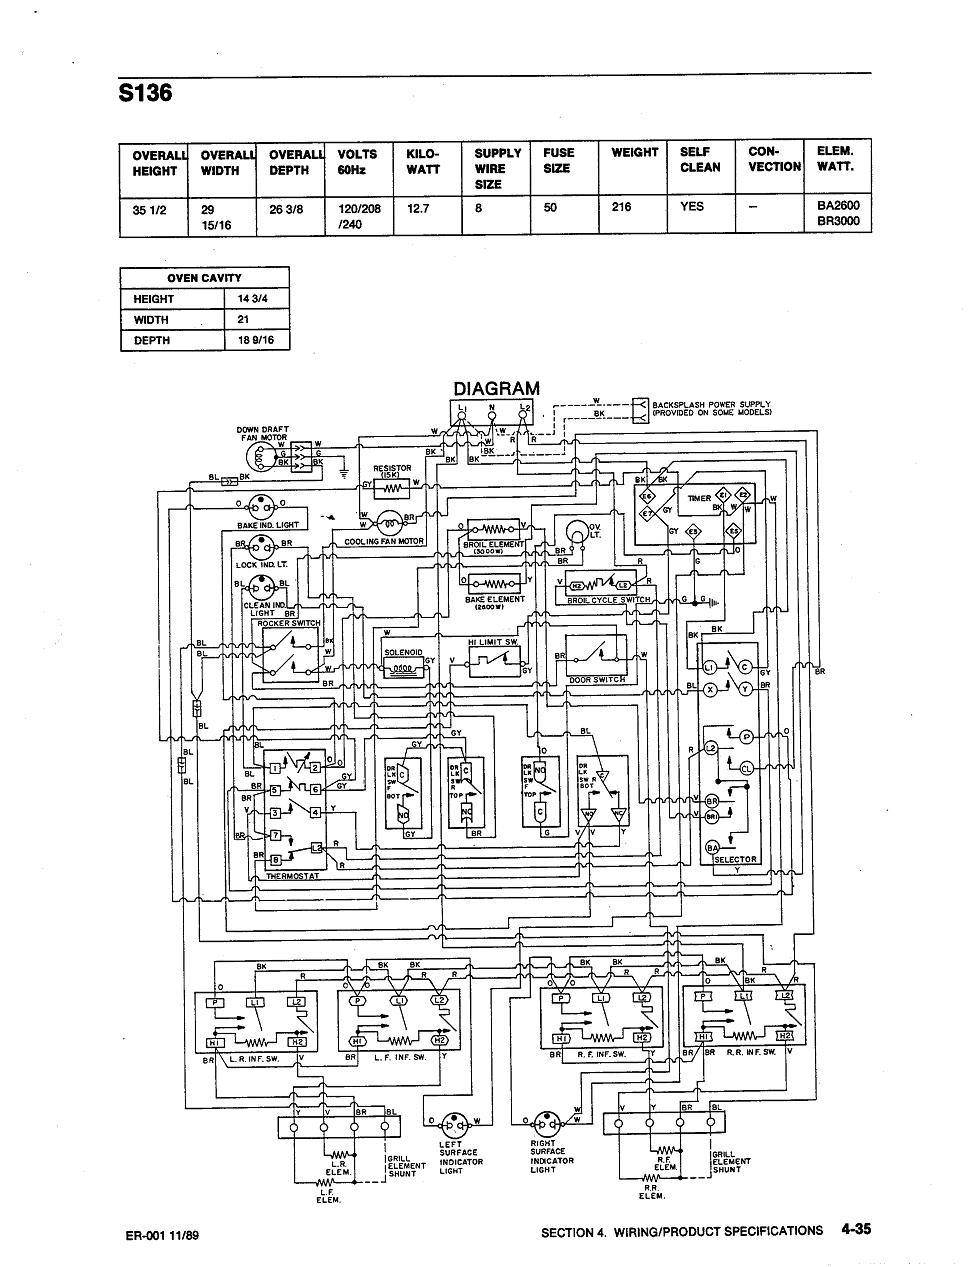 2009 09 07_173907_s136_jenn_air_range_schematic i need a real jenn aire expert i have a jenn air s136 it is 20 jenn-air s136 wiring diagram at readyjetset.co